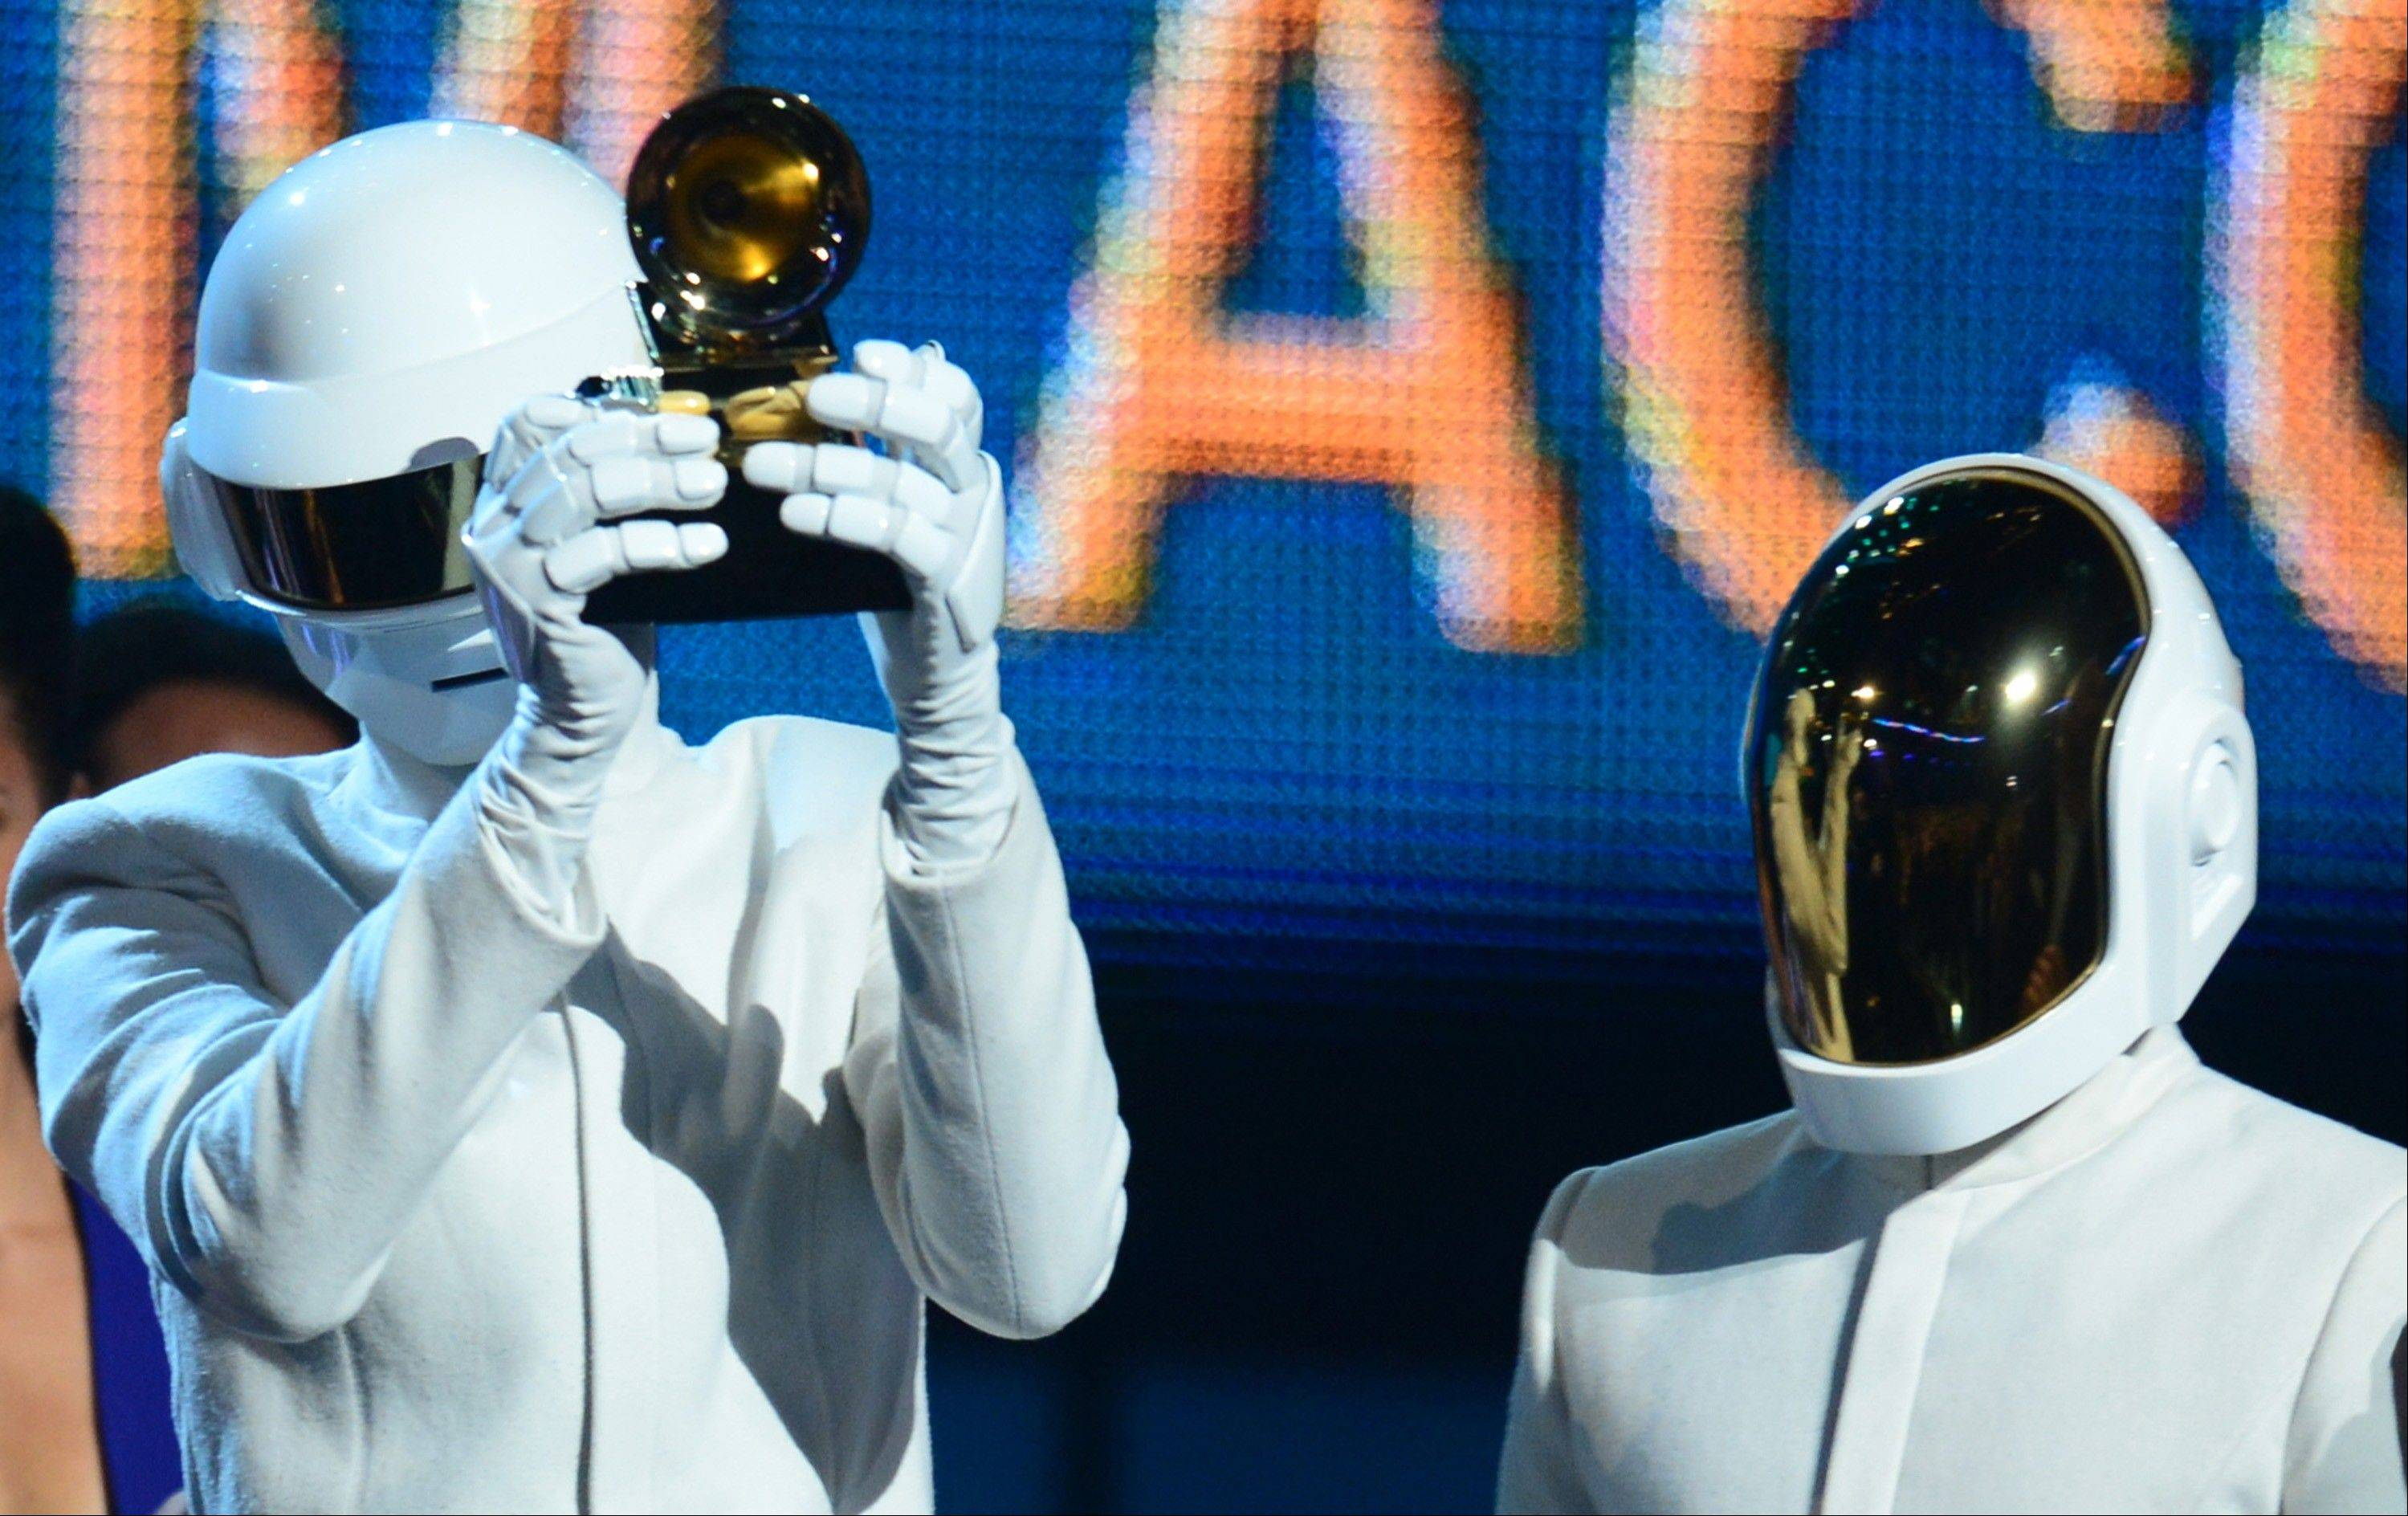 Daft Punk: Who knew they were French?